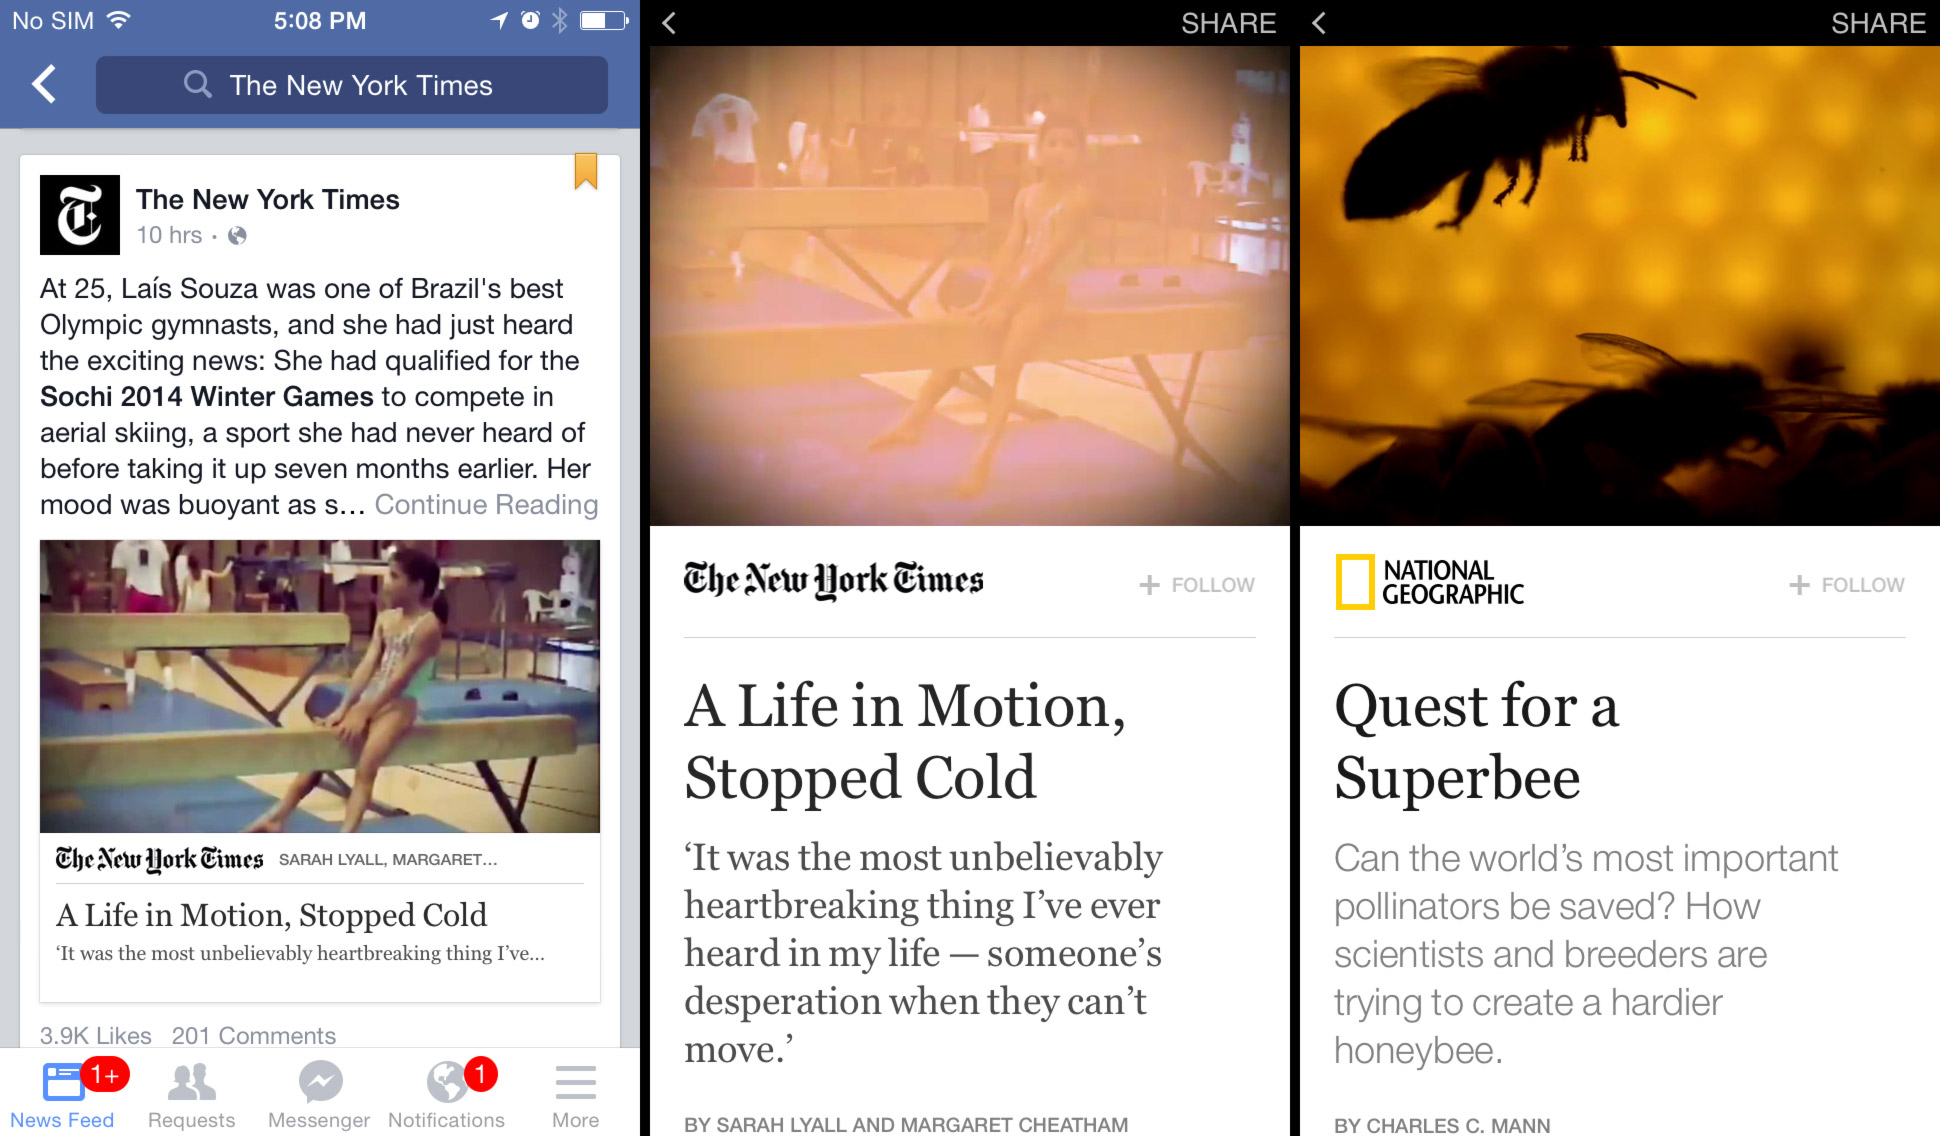 facebook instant articles for travel content marketing?